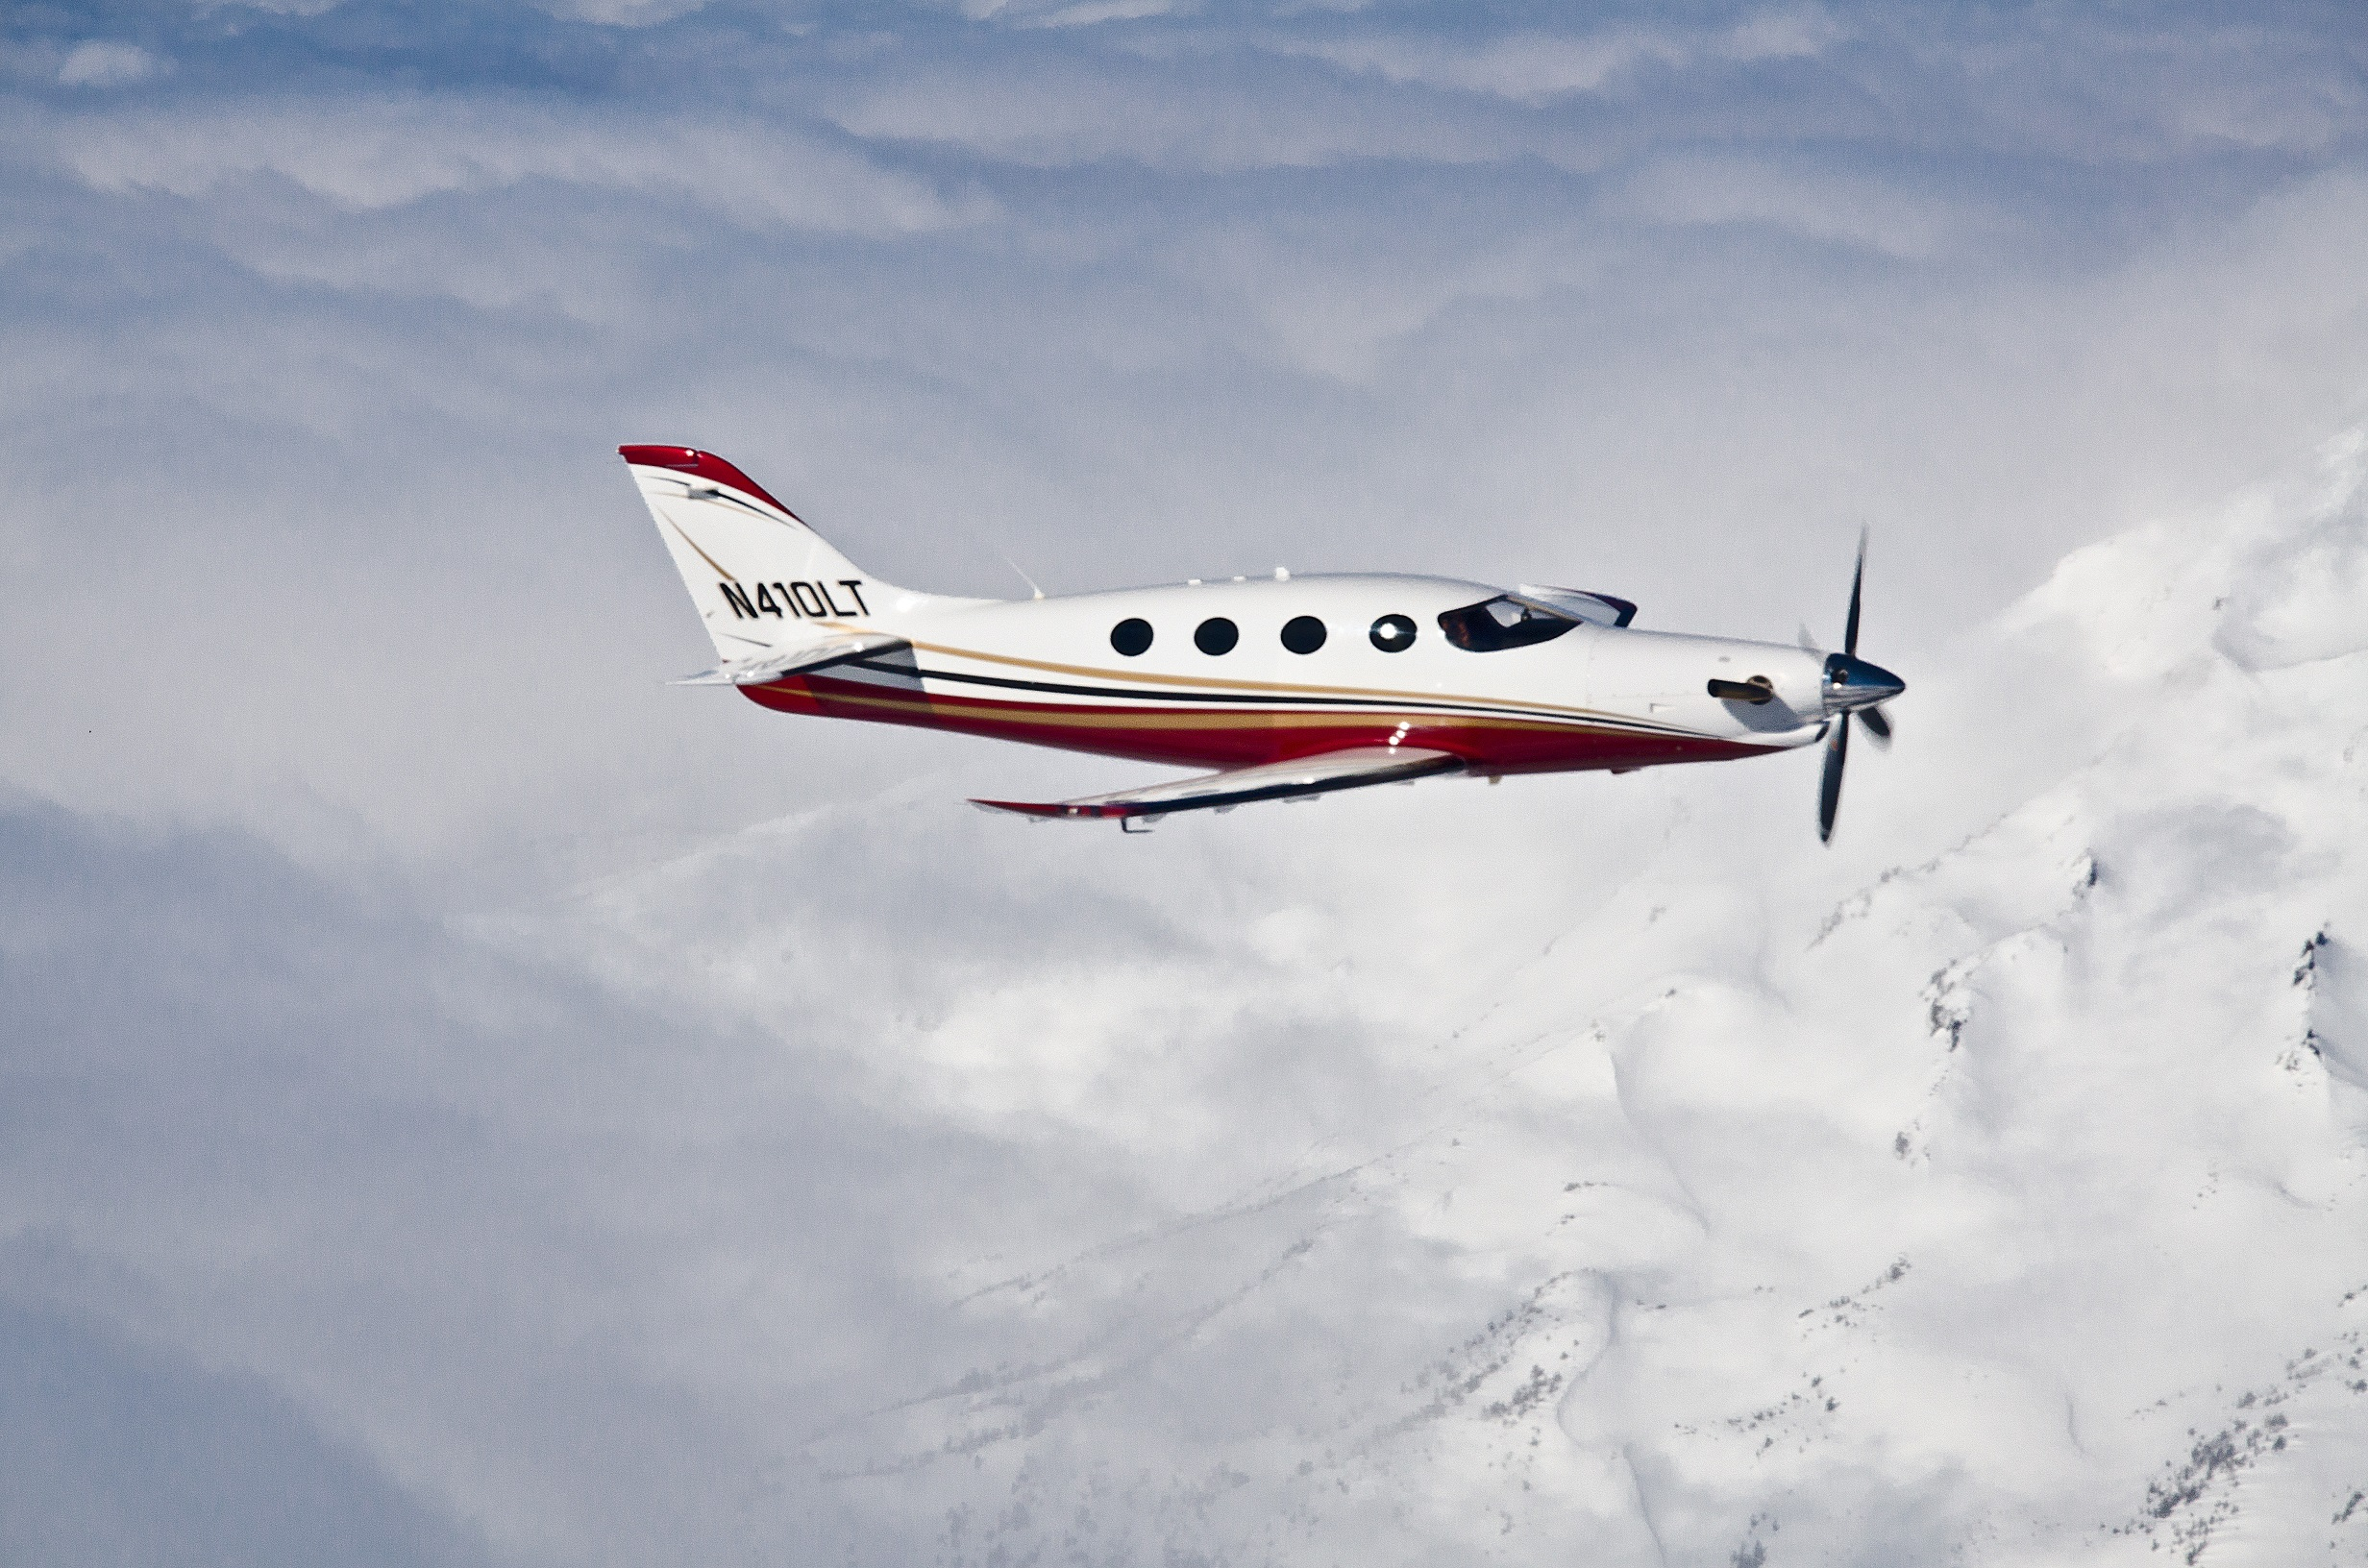 FAA Certification On Schedule for Epic Aircraft